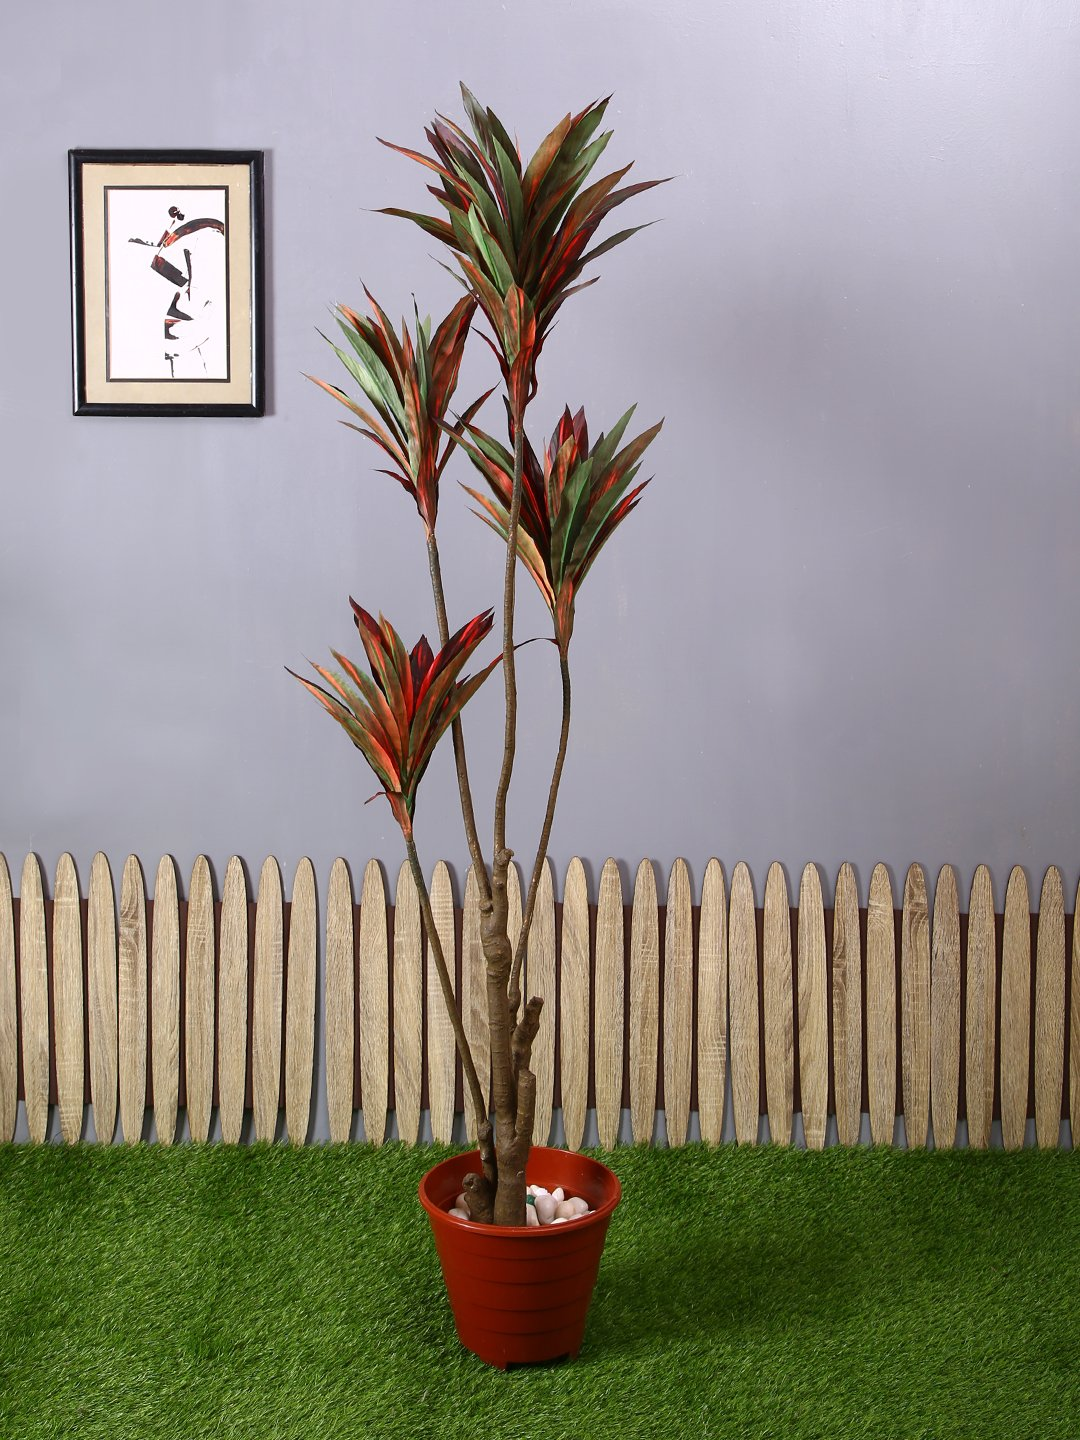 Pollination Decorative White-Green Dracaena Artificial Plant Without Pot for Home Decoration (L 60 cm x H 150 cm)